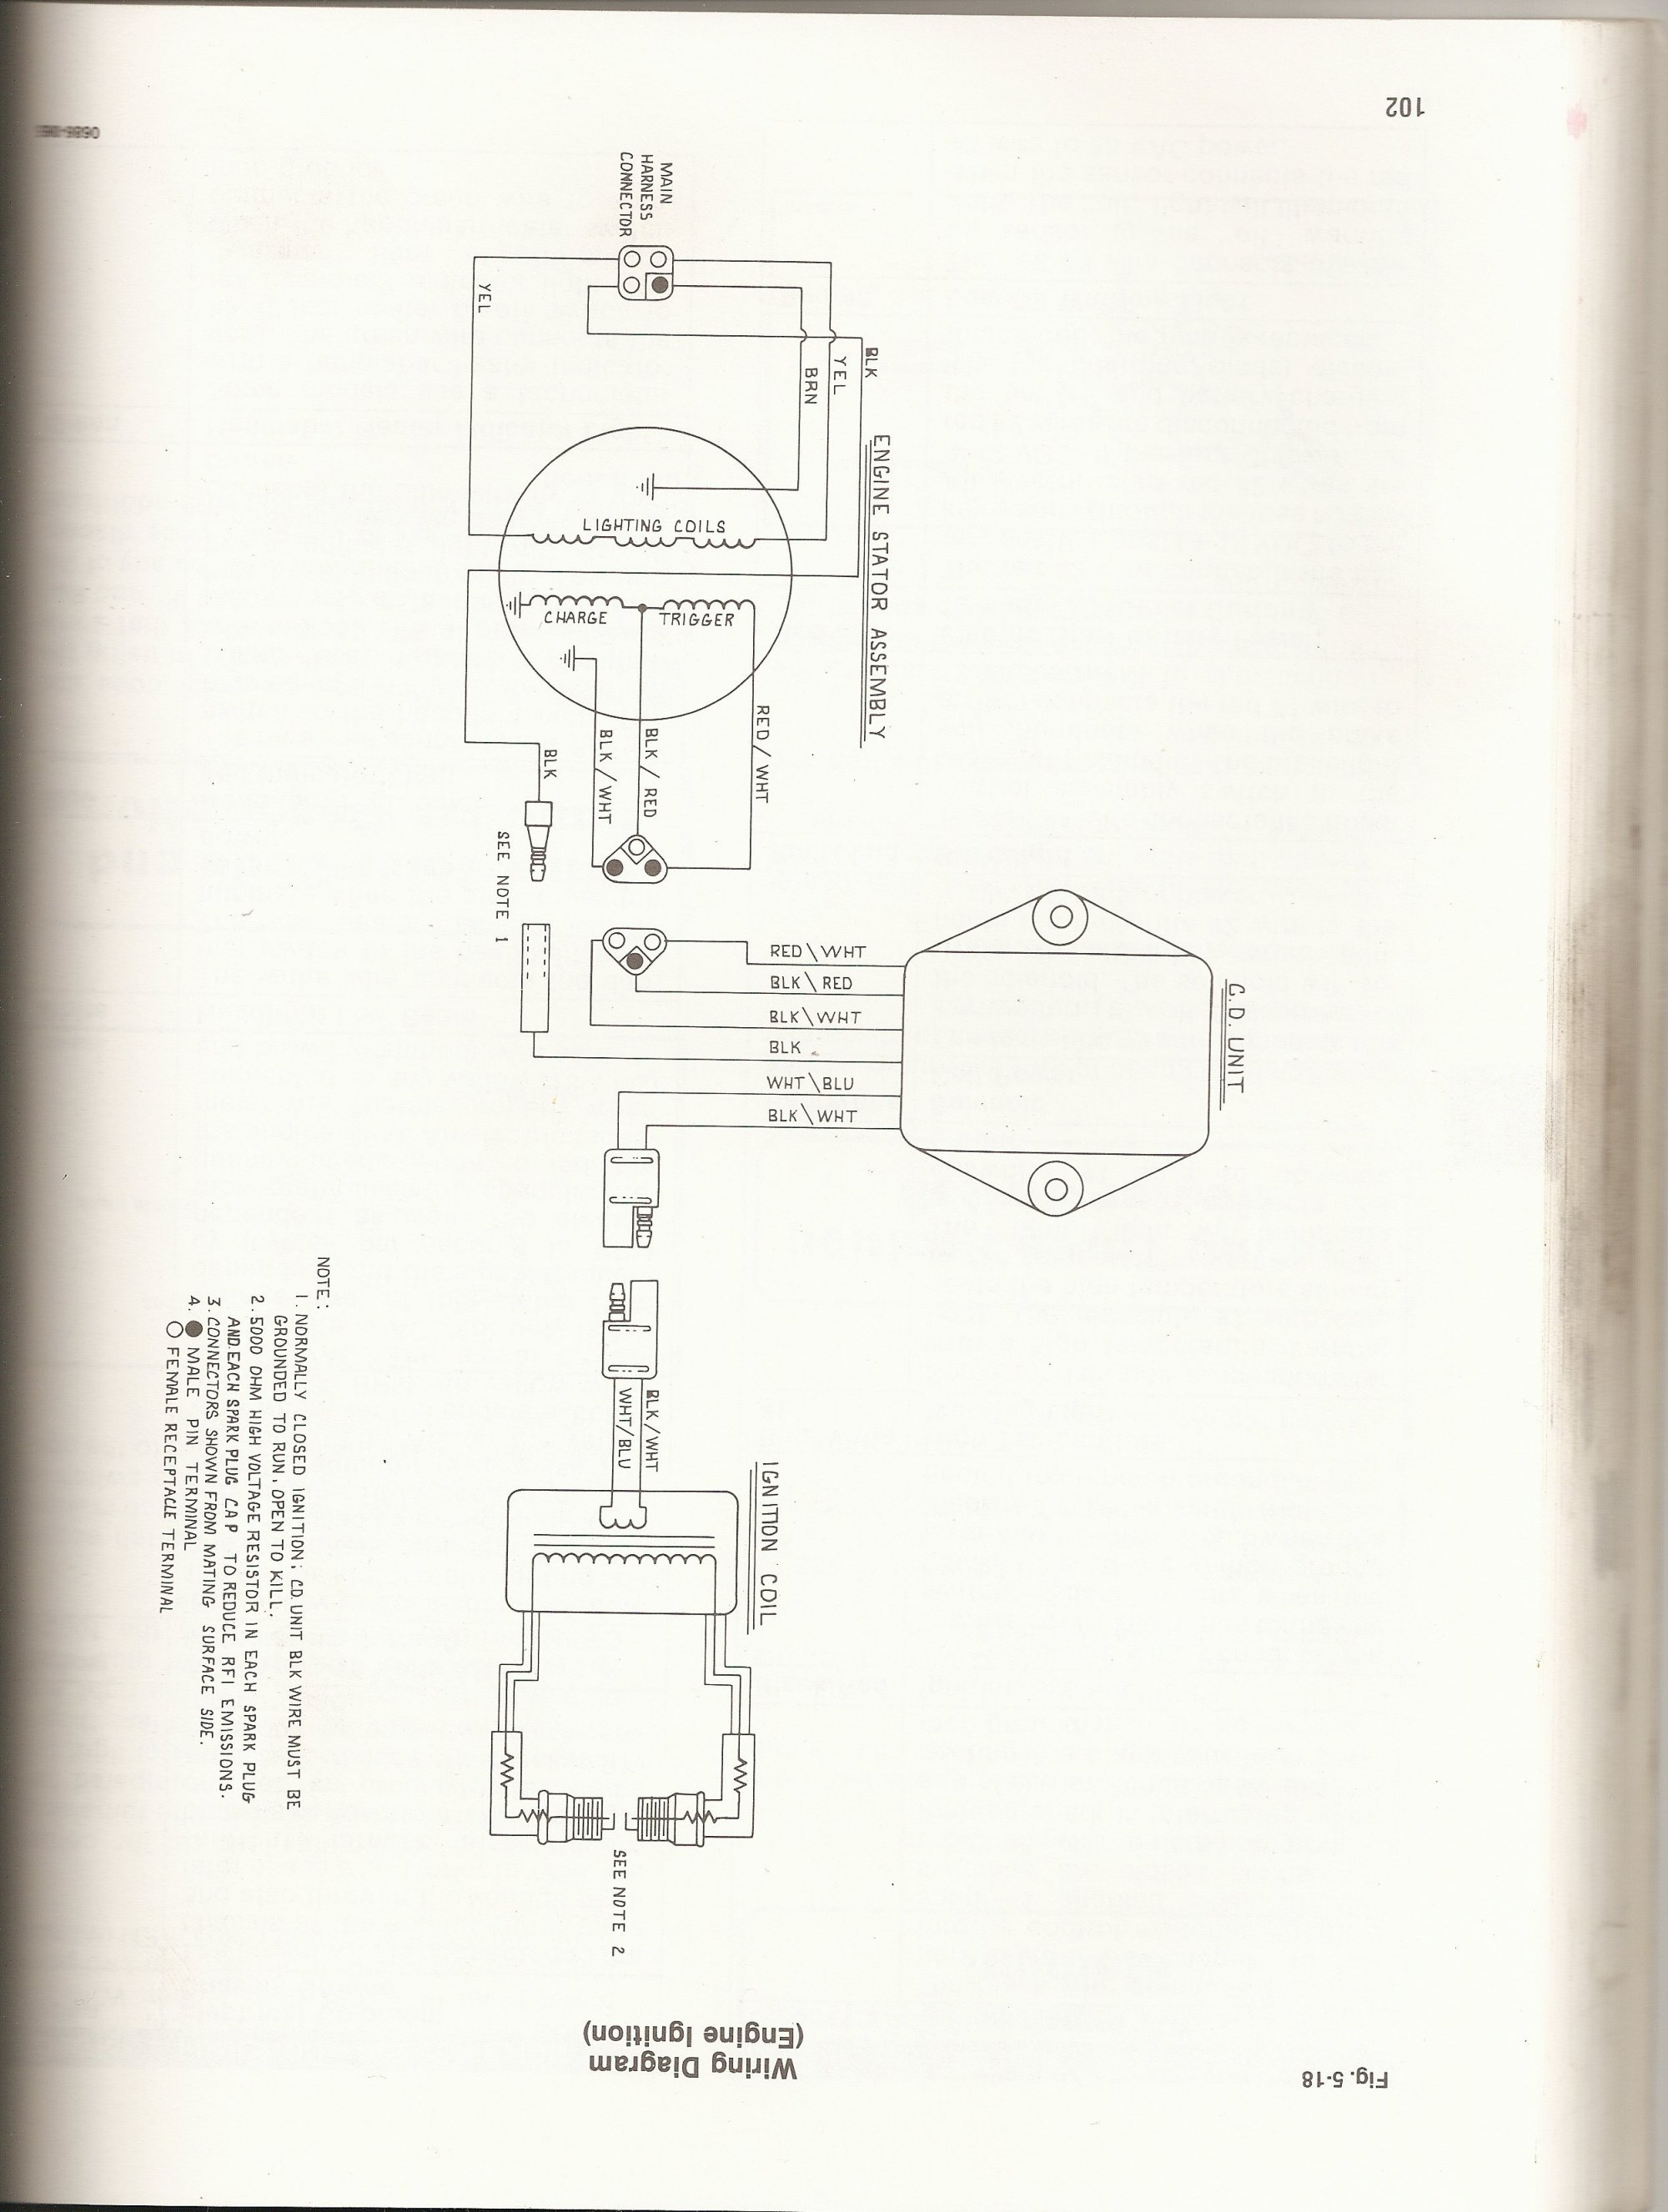 hight resolution of 139506d1198506633 1992 wildcat wiring diagram scan0014 arctic cat jag wiring diagram for 1979 wiring diagrams arctic